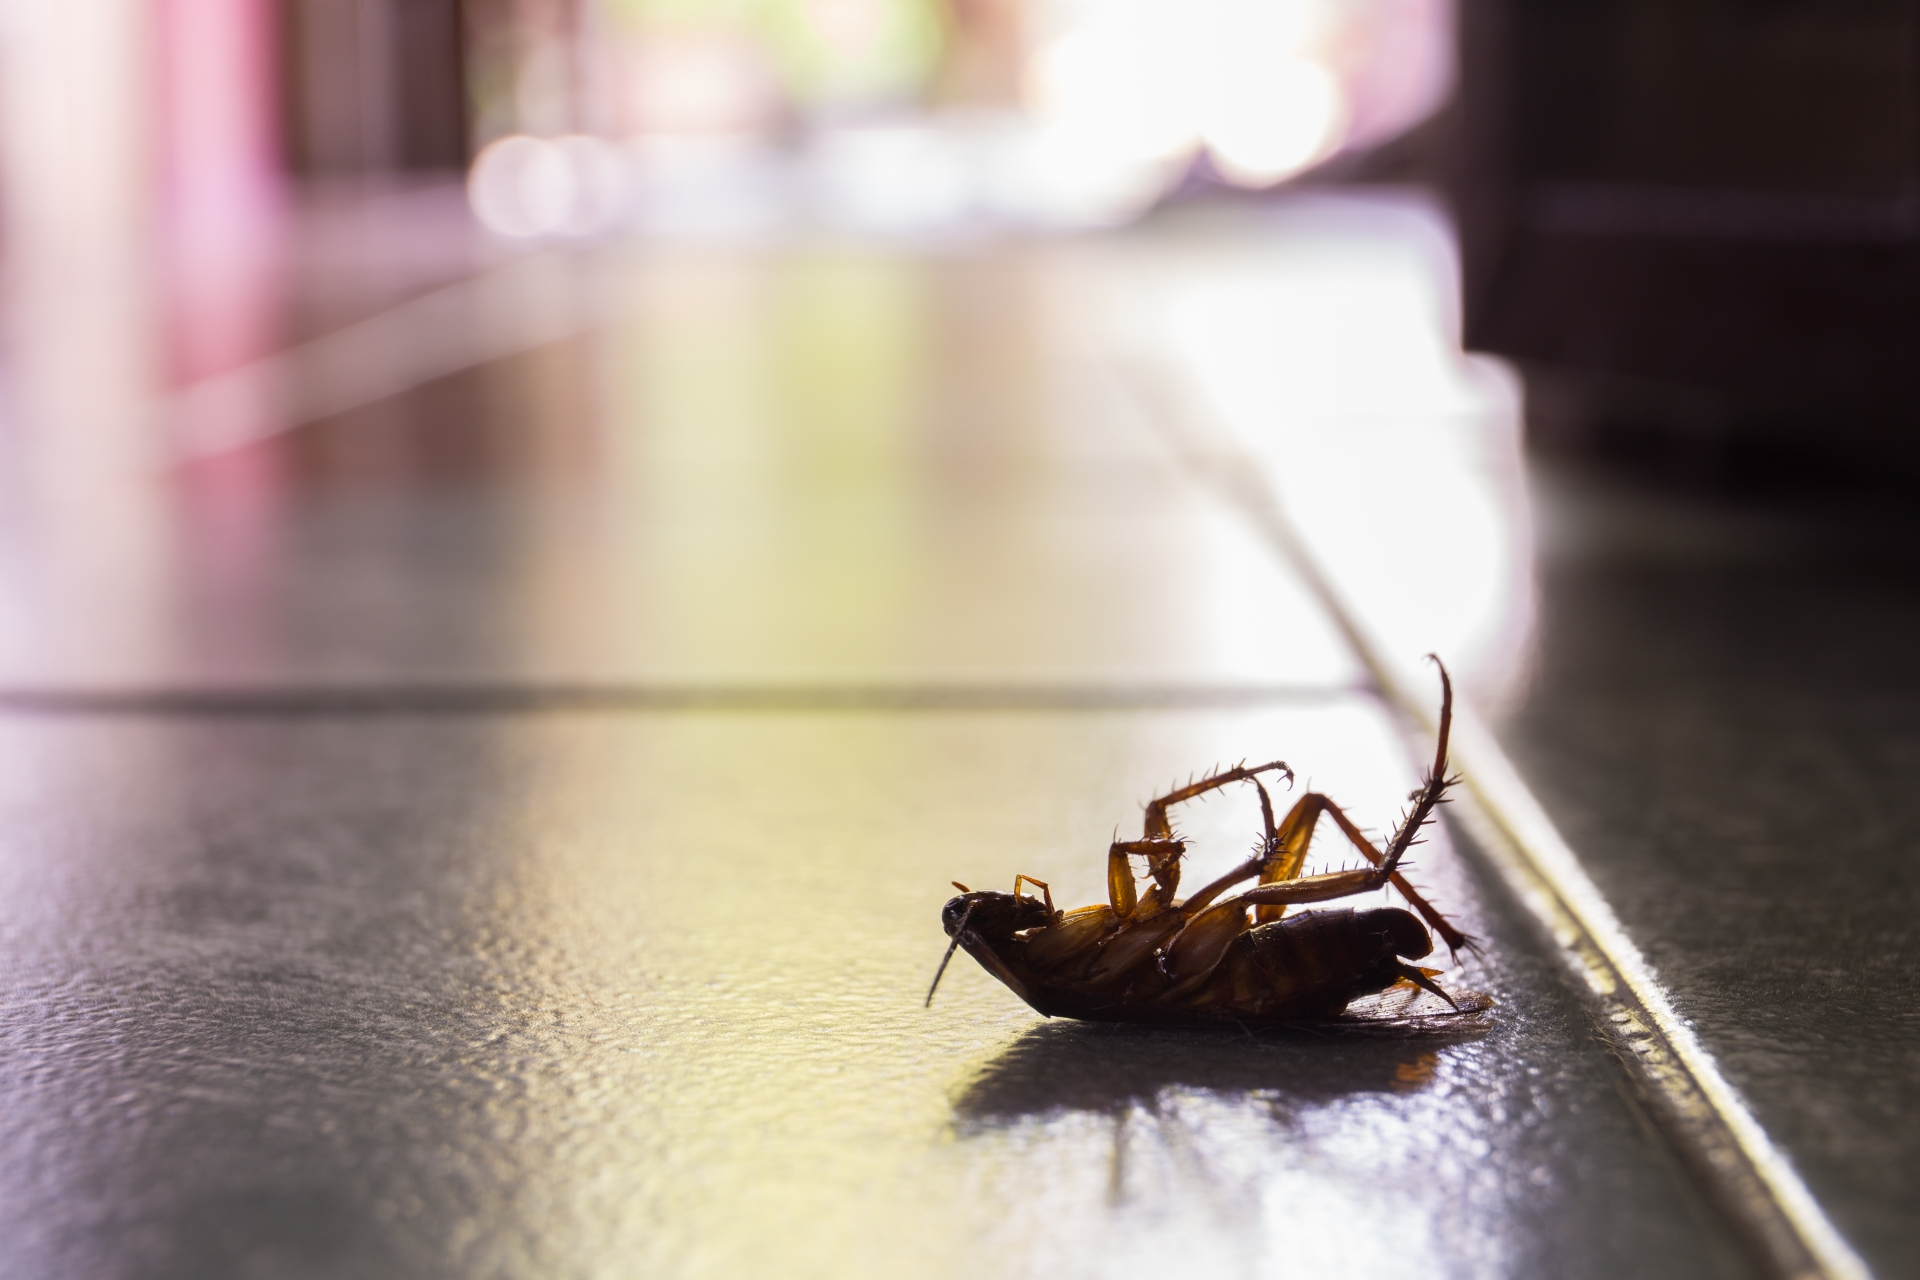 Cockroach Control, Pest Control in Elephant & Castle, SE17. Call Now 020 8166 9746